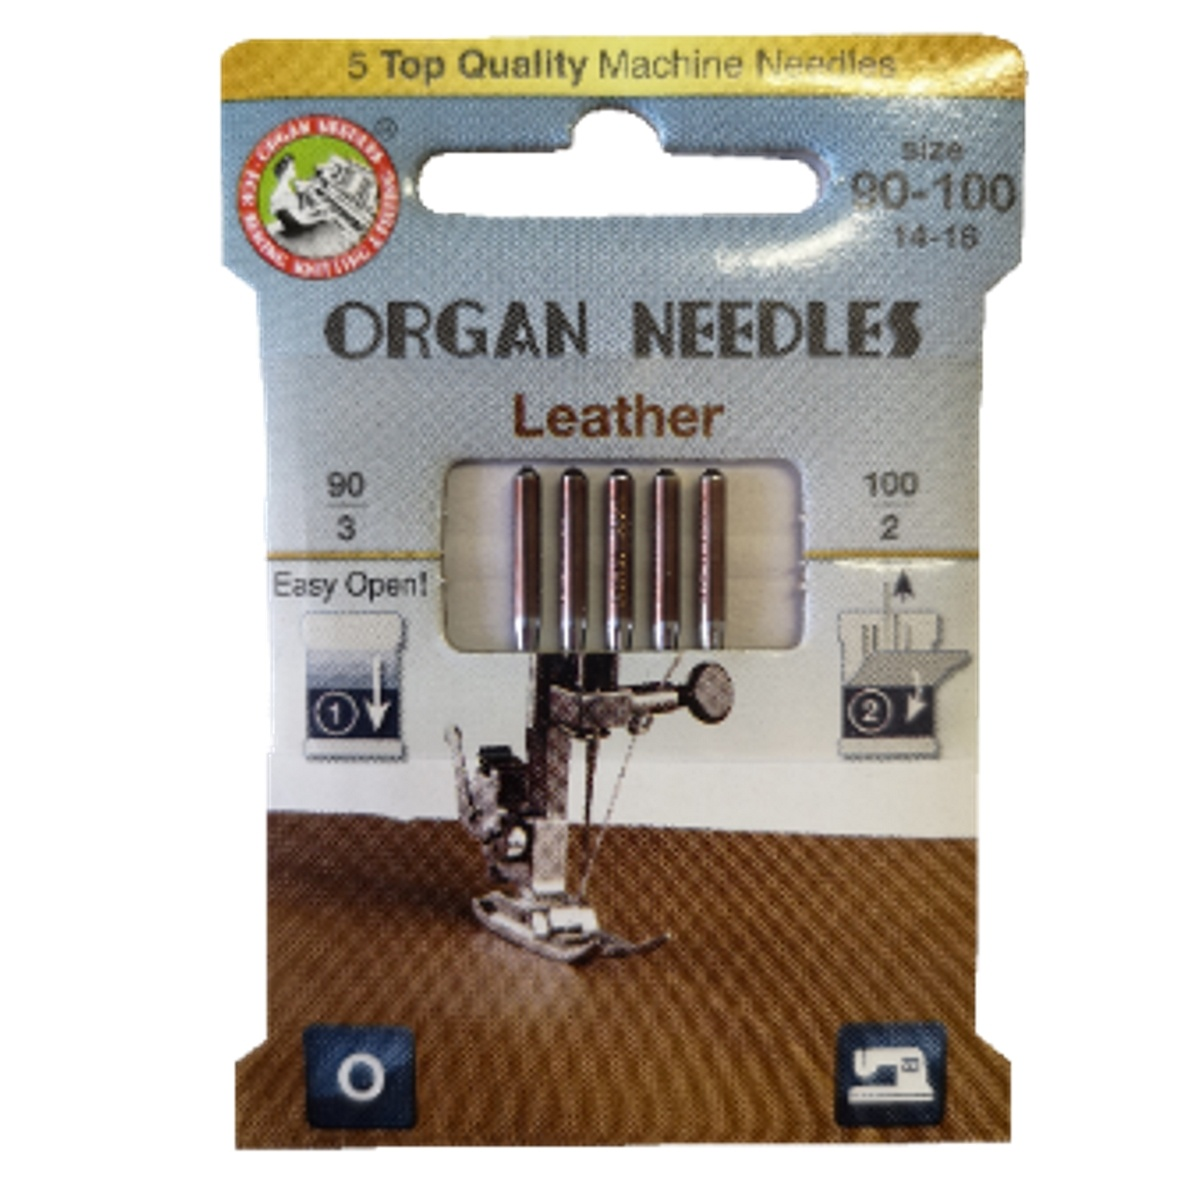 Jehly Organ Needles Leather 90-100